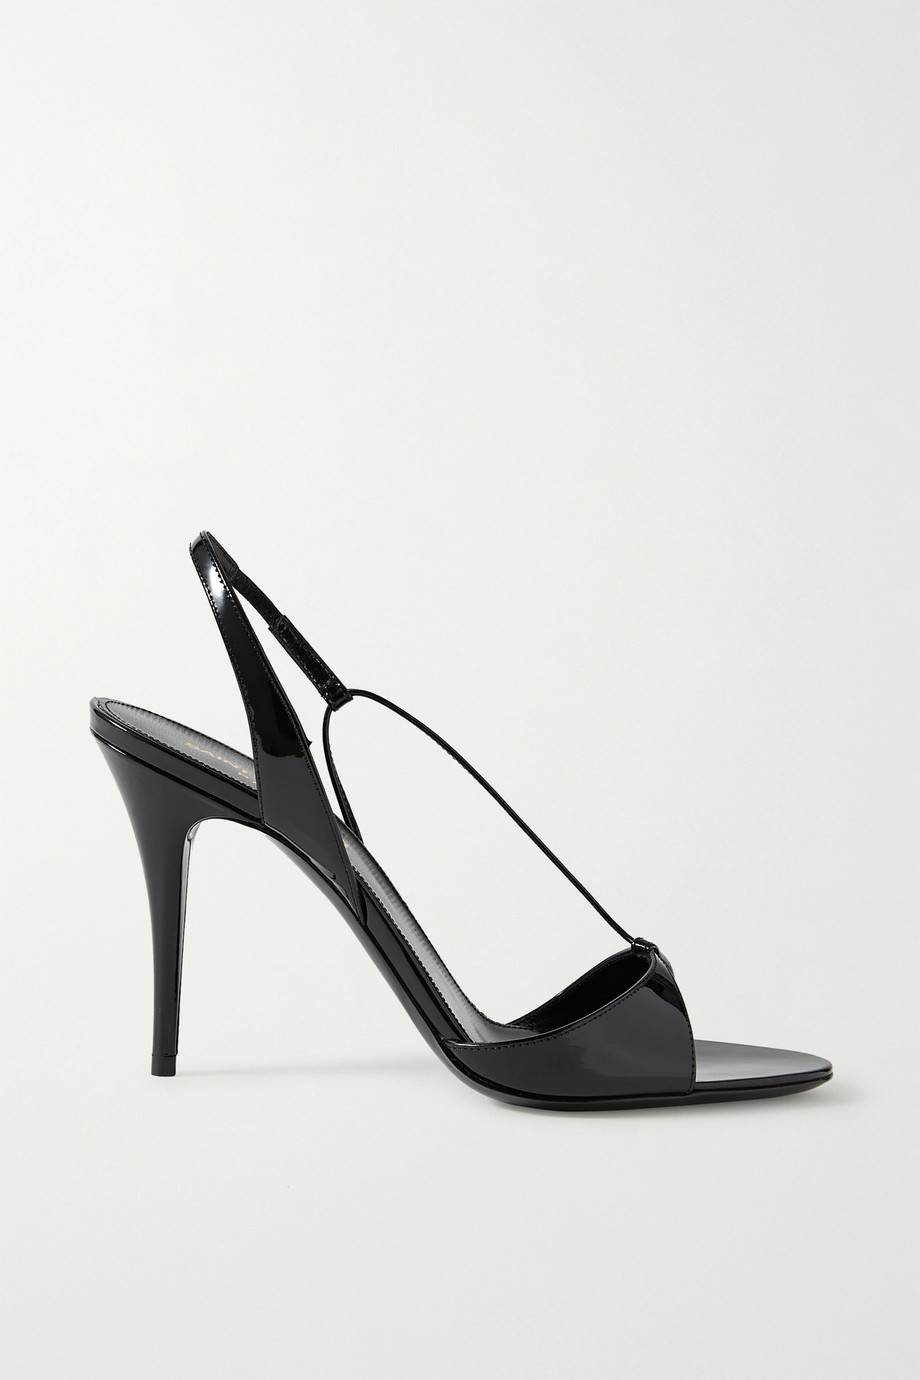 SAINT LAURENT Anouk patent-leather slingback sandals